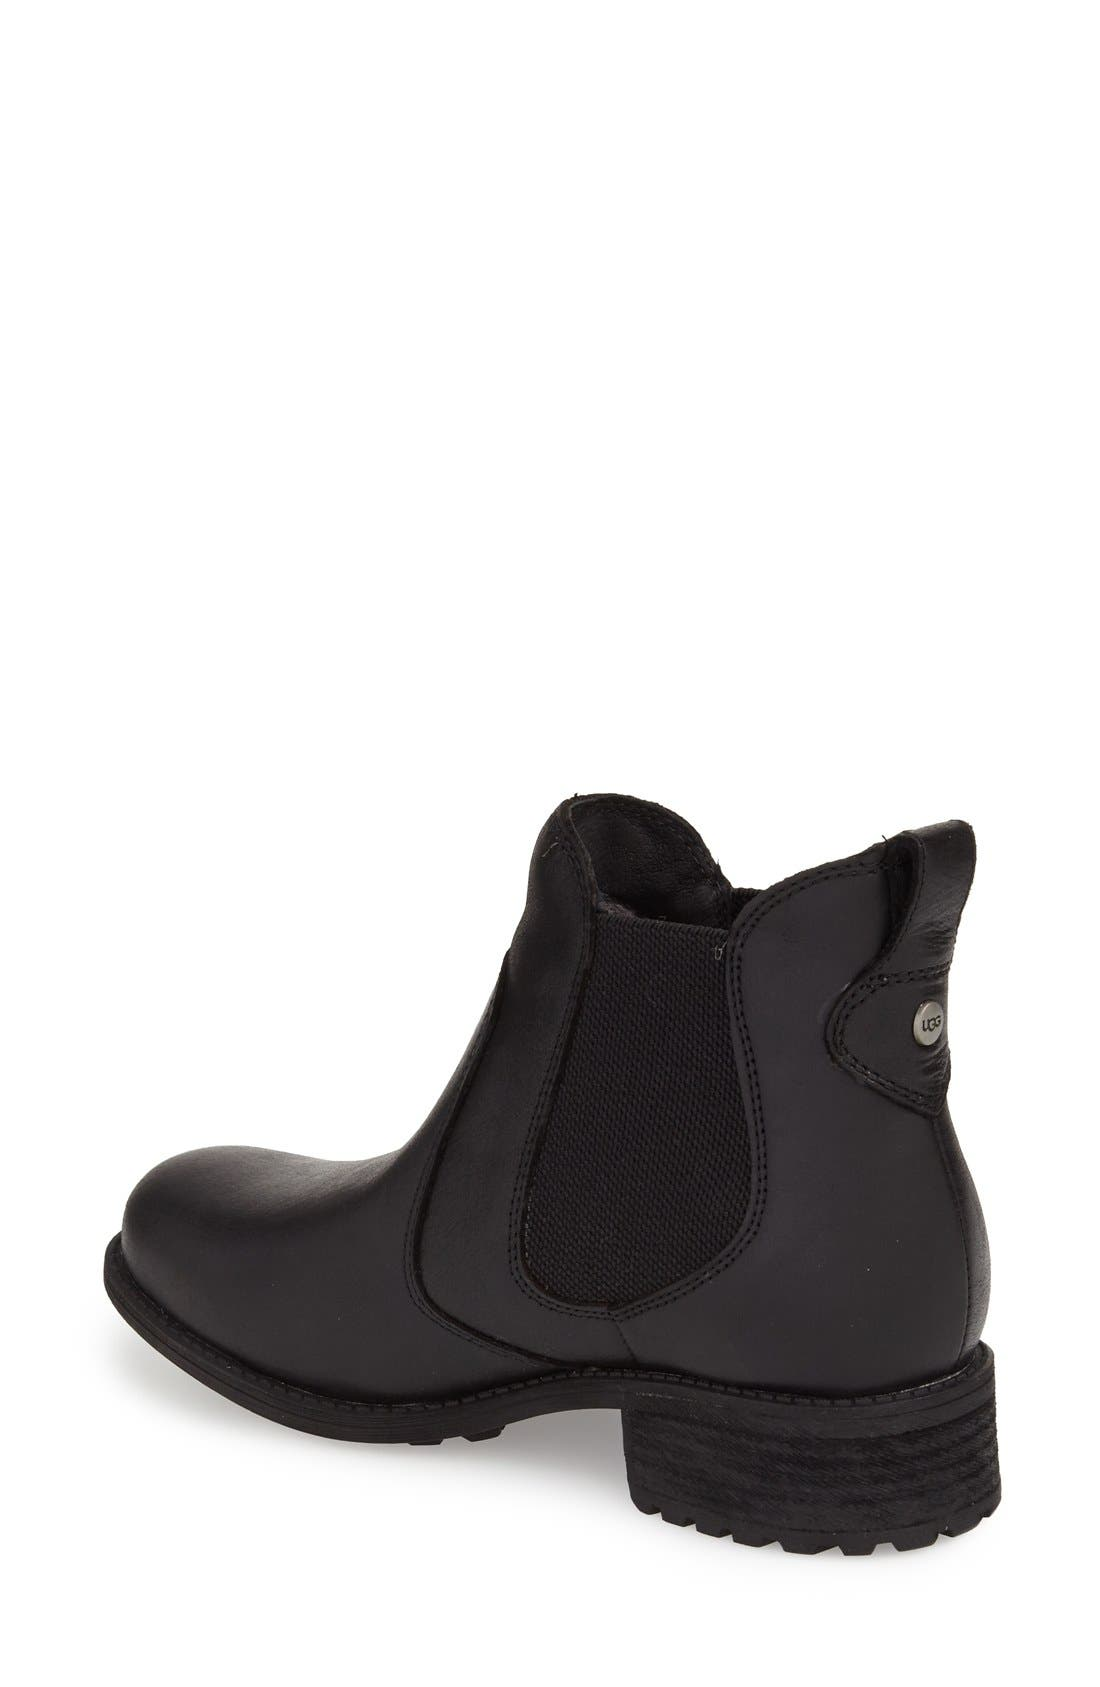 Bonham Chelsea Boot,                             Alternate thumbnail 2, color,                             001